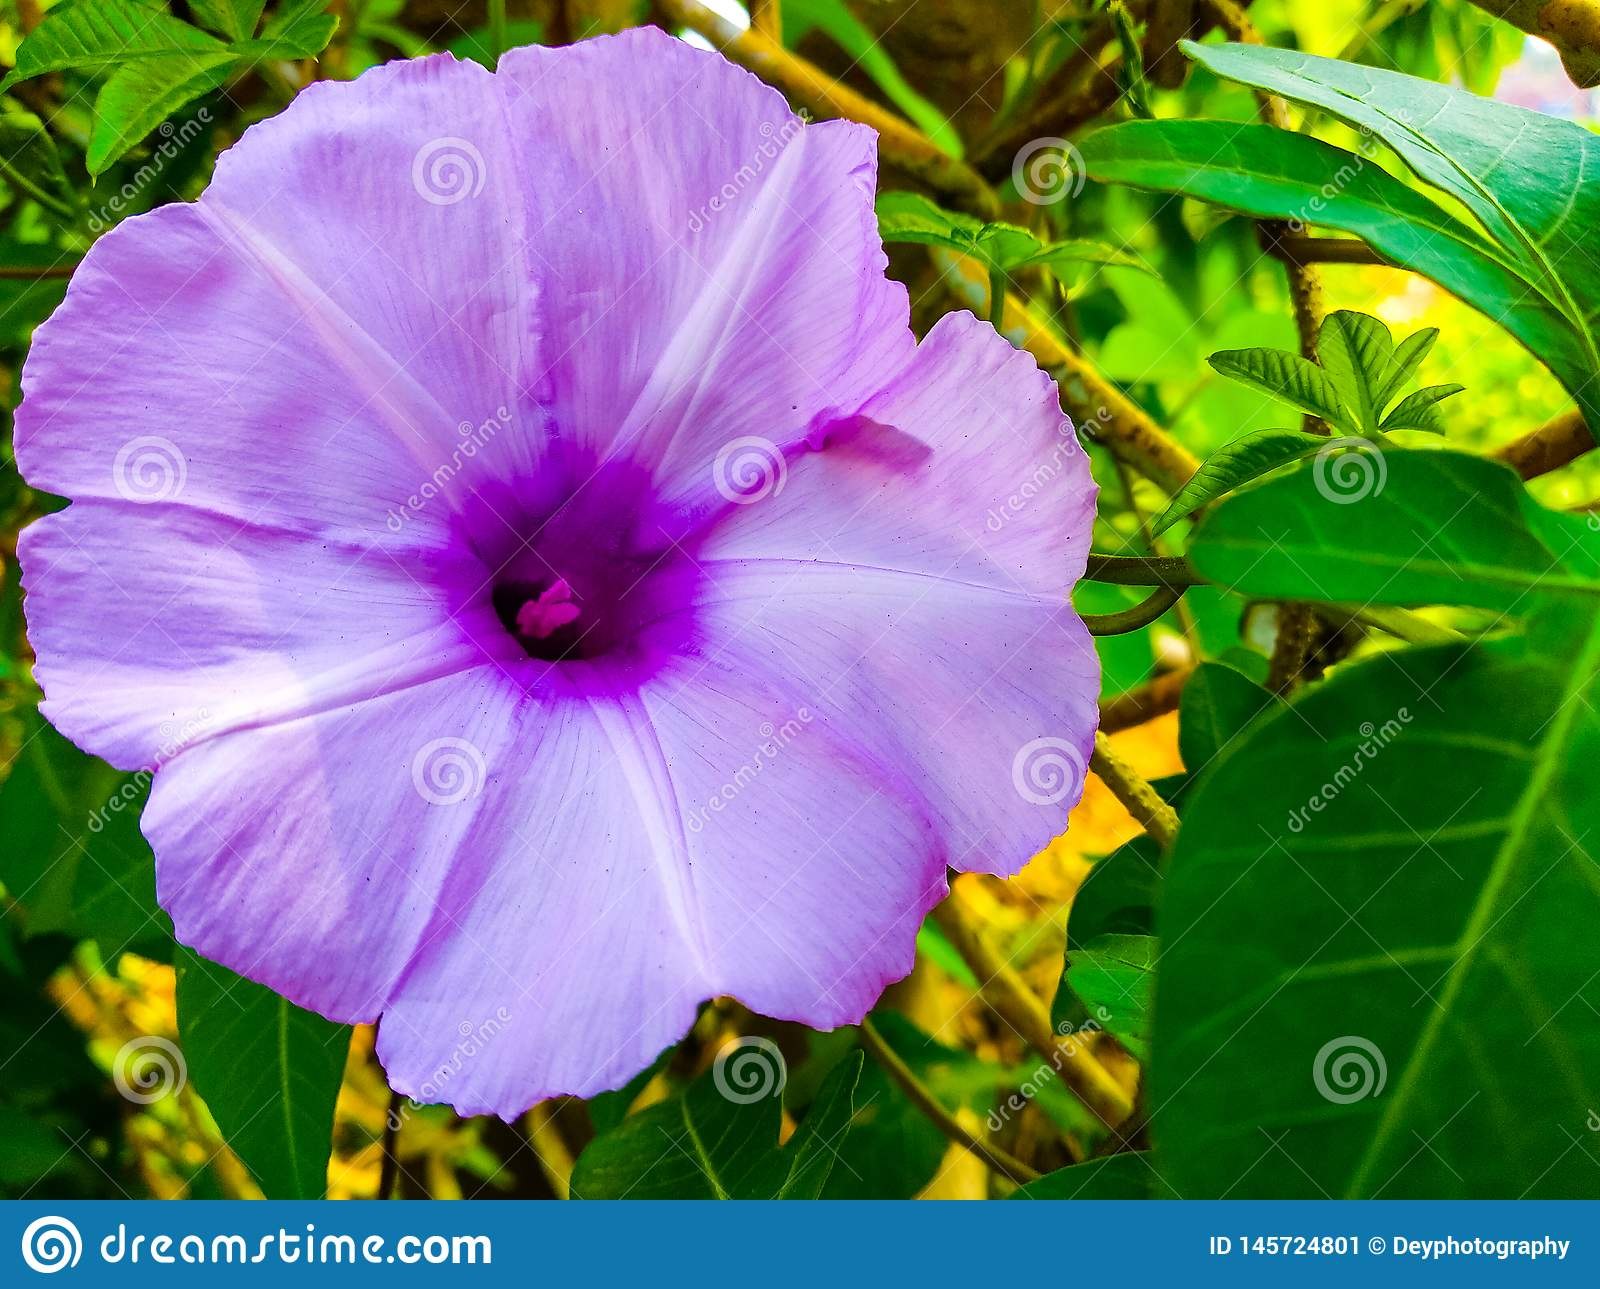 Ipomoea pes-caprae flower, also known as Bayhops. this is beach morning glory